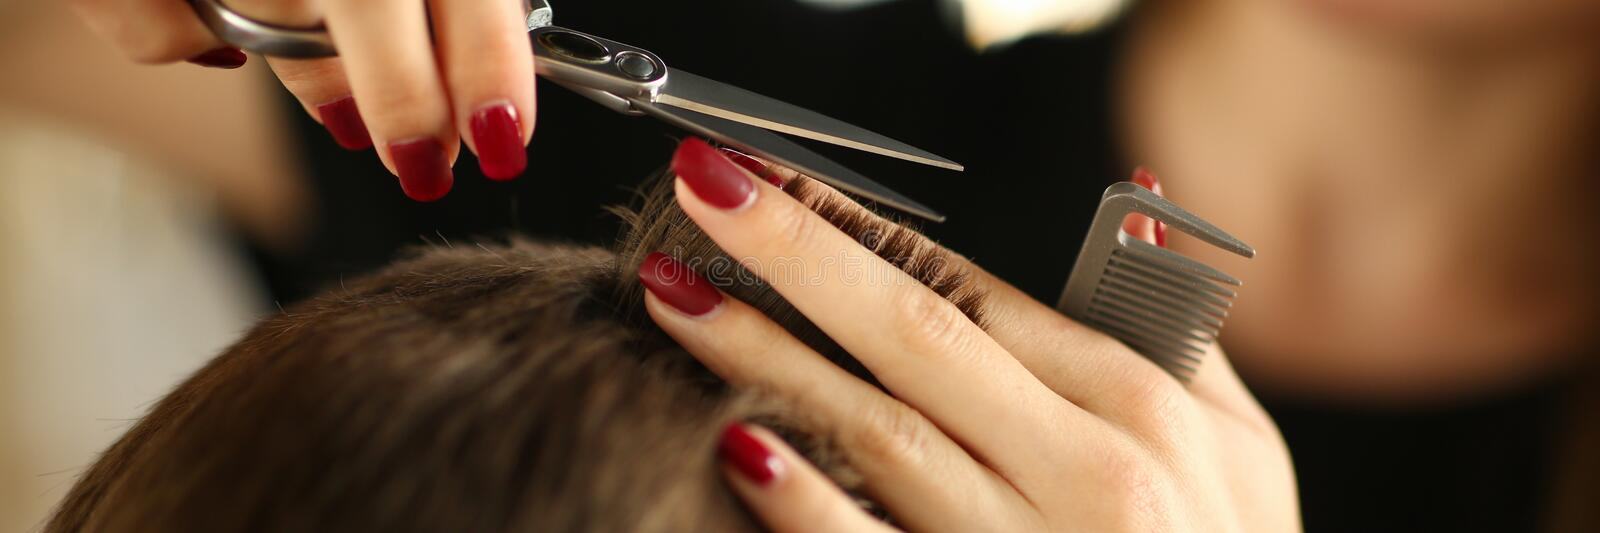 Hairdresser with Scissors Cutting Brown Male Hair. Hands with Red Manicure Making Haircut for Man. Female Fingers Holding Hairbrush for Client Hairstyle stock photos